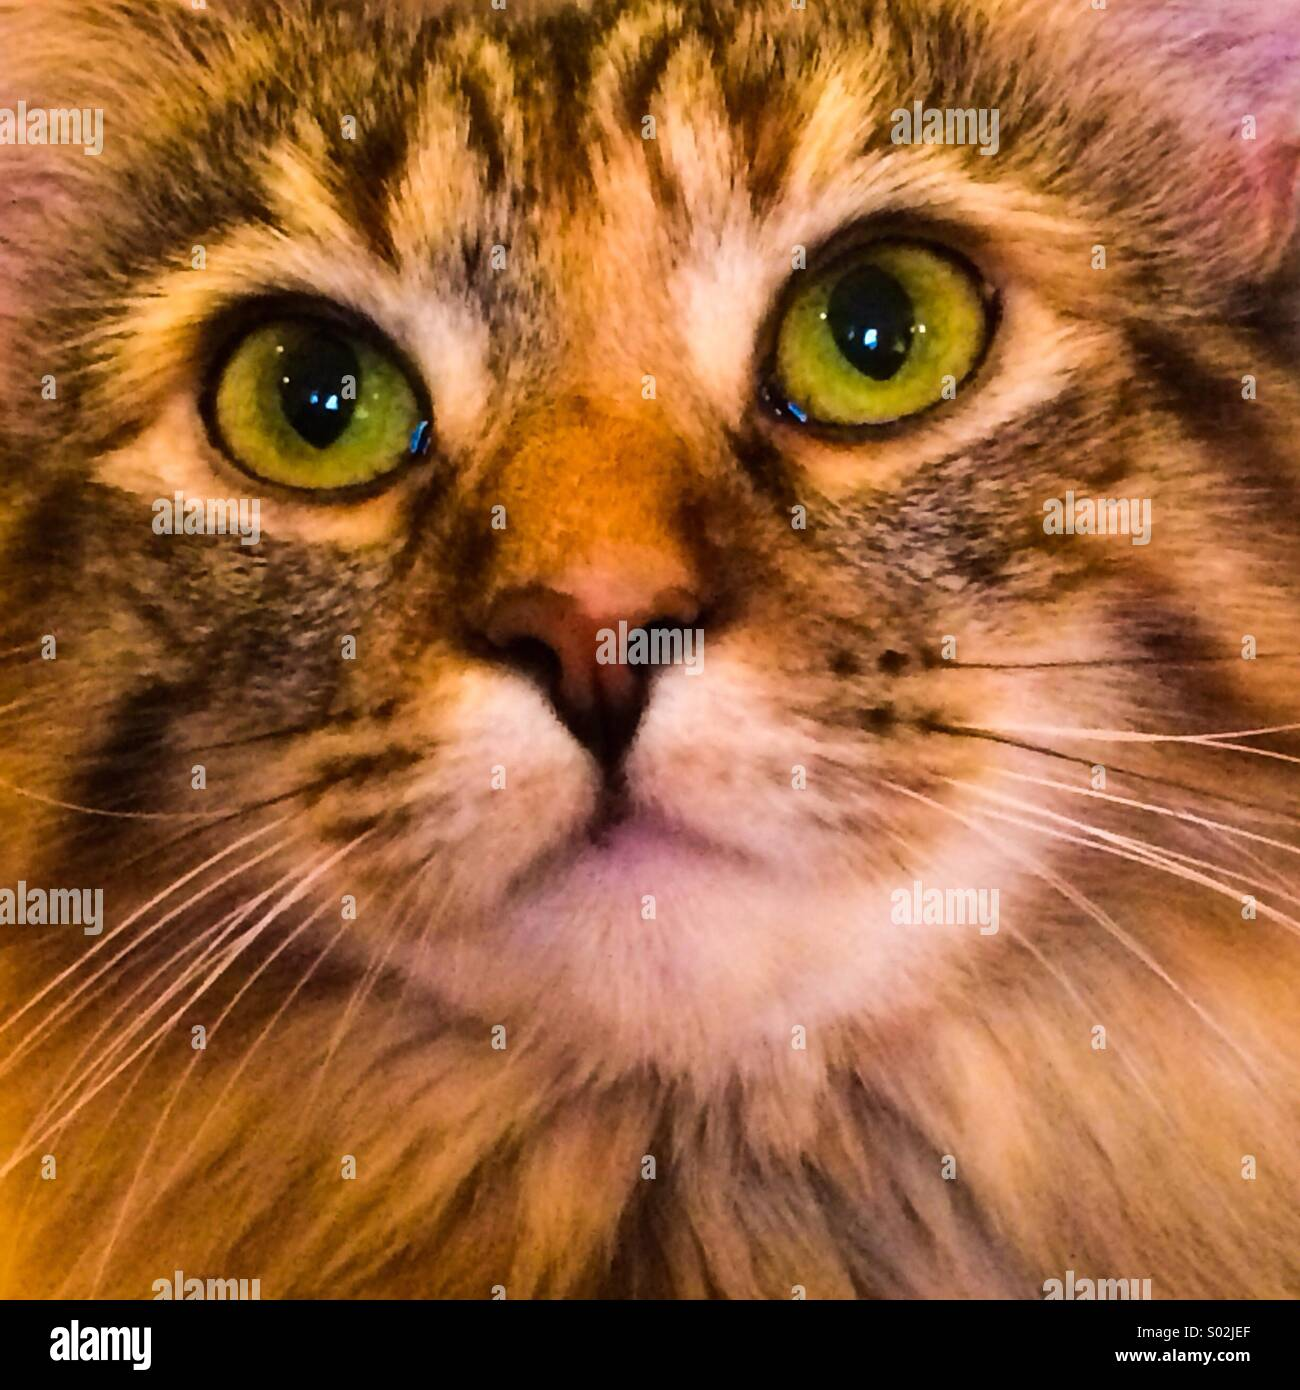 Furry cat with green eyes - Stock Image